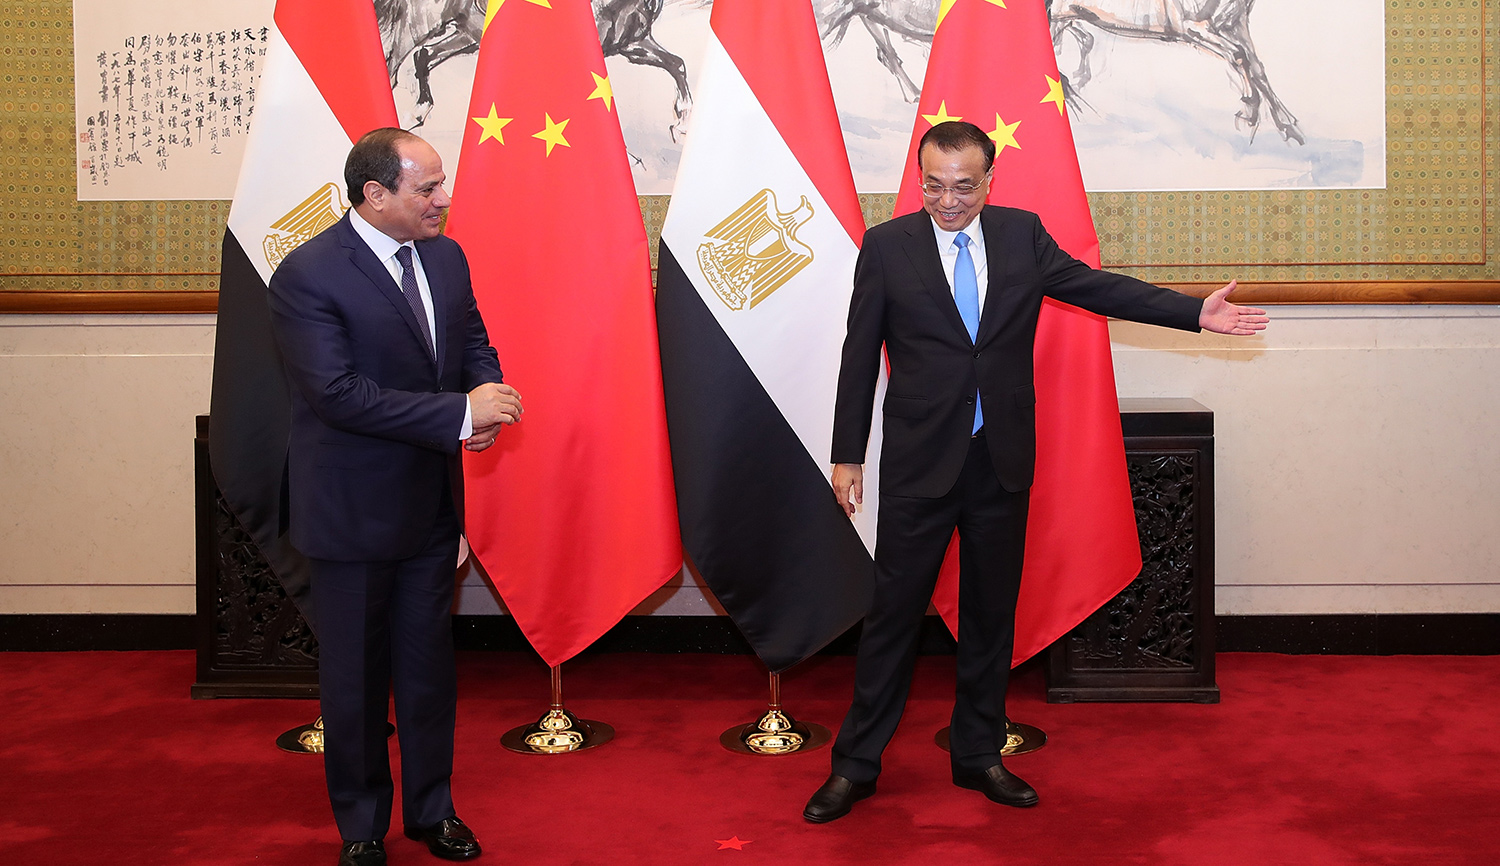 Egypt's President Abdel Fattah al-Sisi (L) meets China's Premier Li Keqiang in Beijing on September 2, 2018. LINTAO ZHANG/AFP/Getty Images.